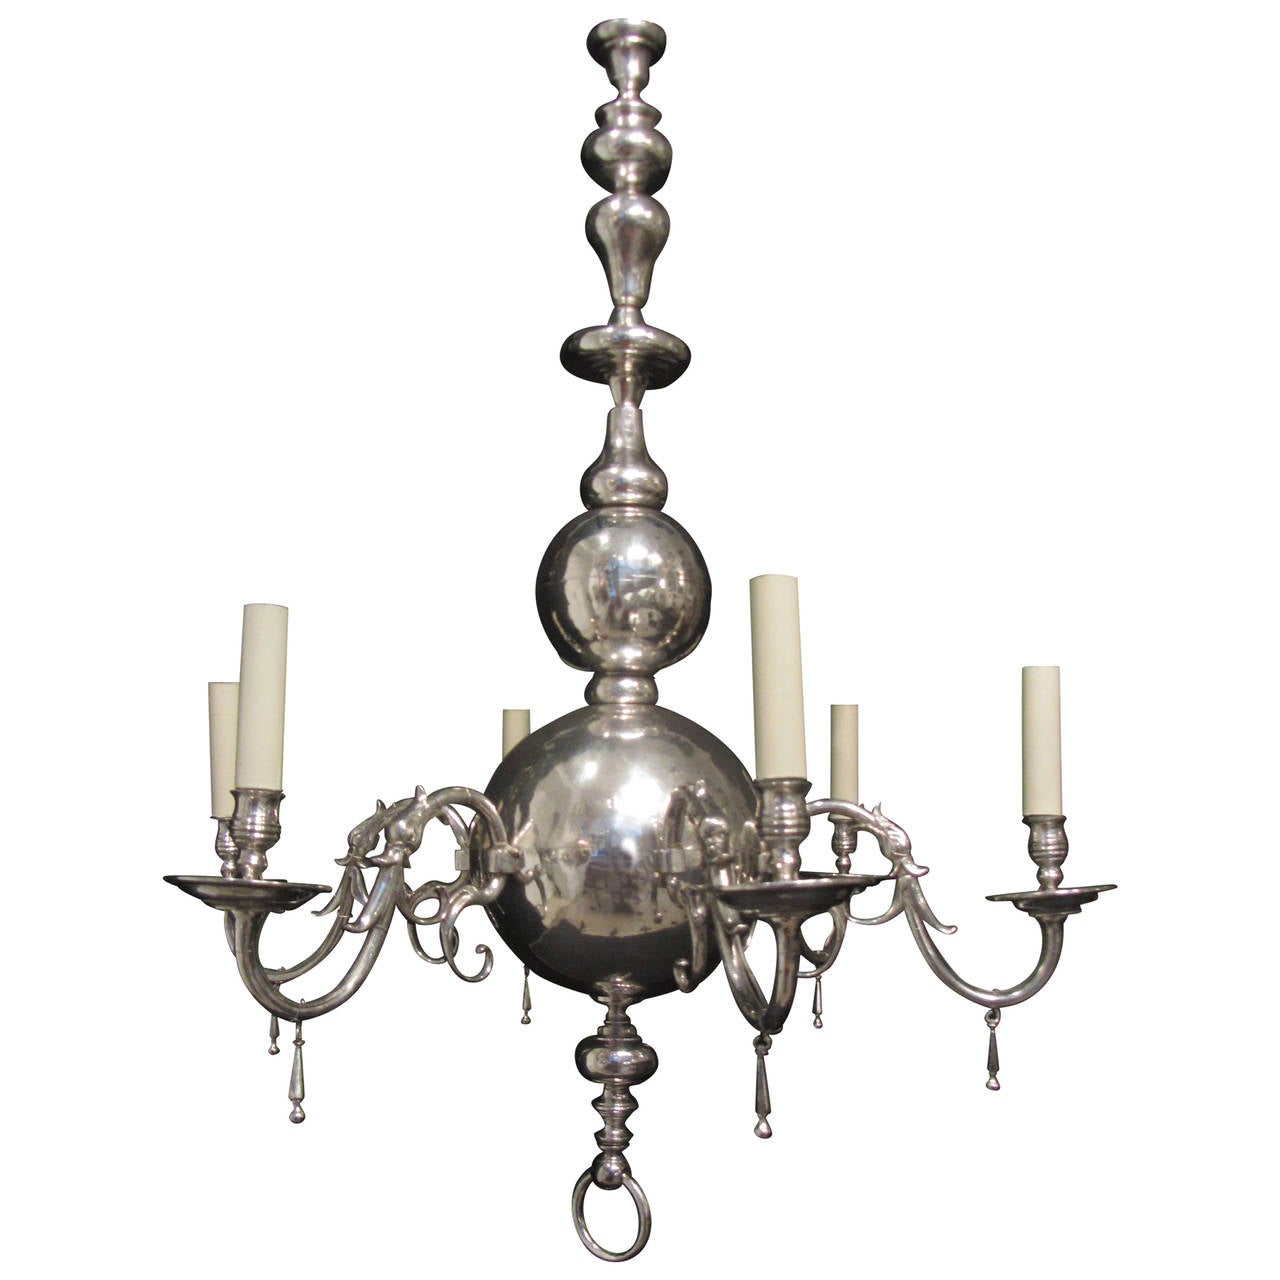 unusual dutch silvered brass orb chandelier is no longer available